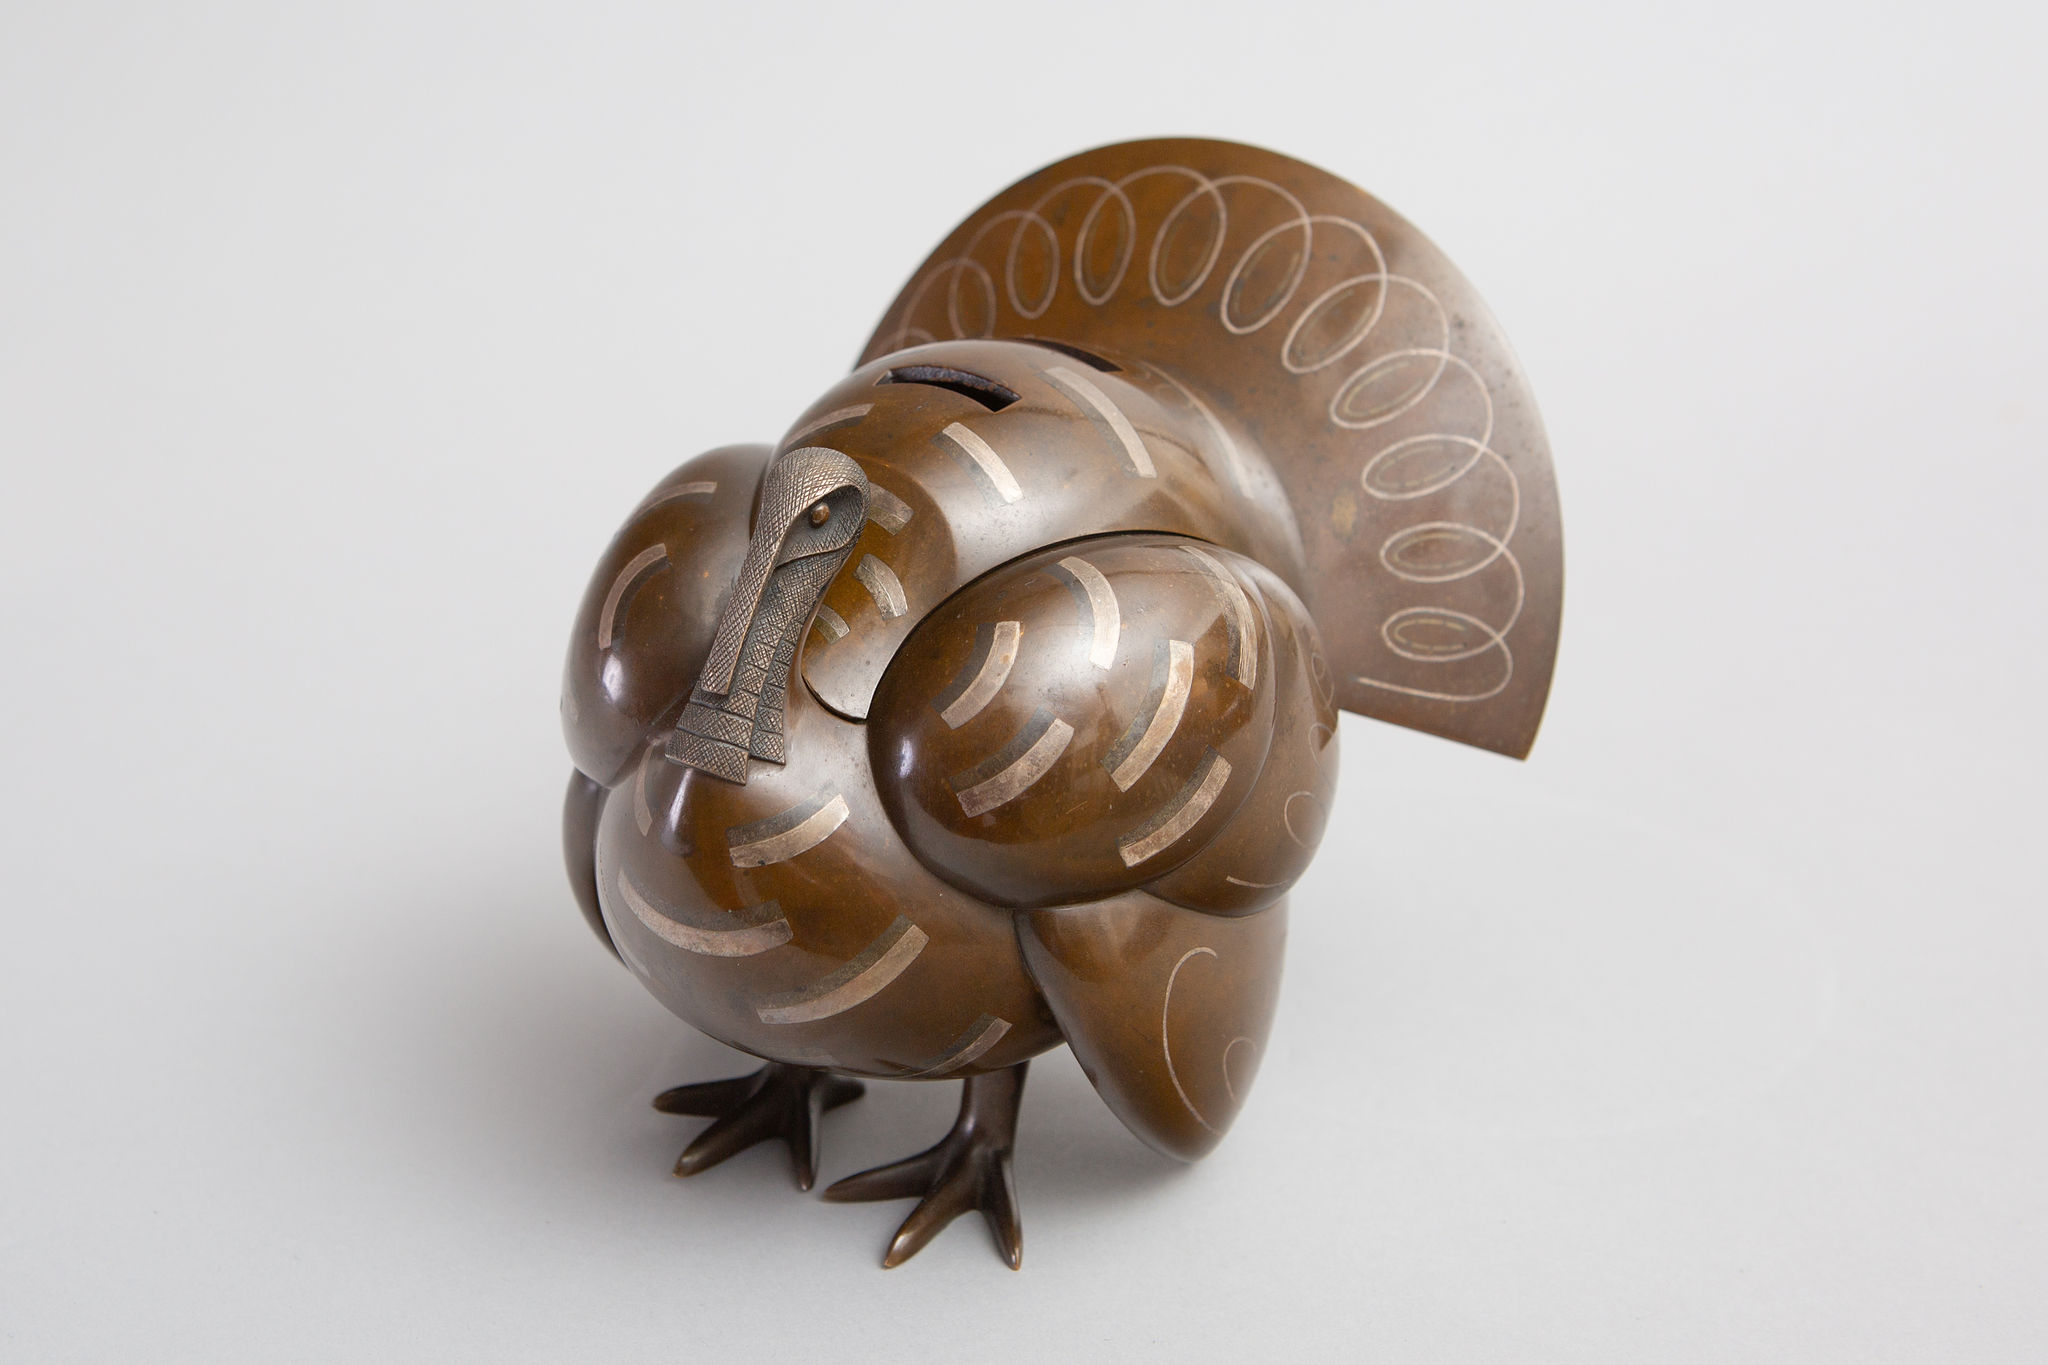 Japanese Bronze Koro (Incense Burner) in the Shape of a Turkey